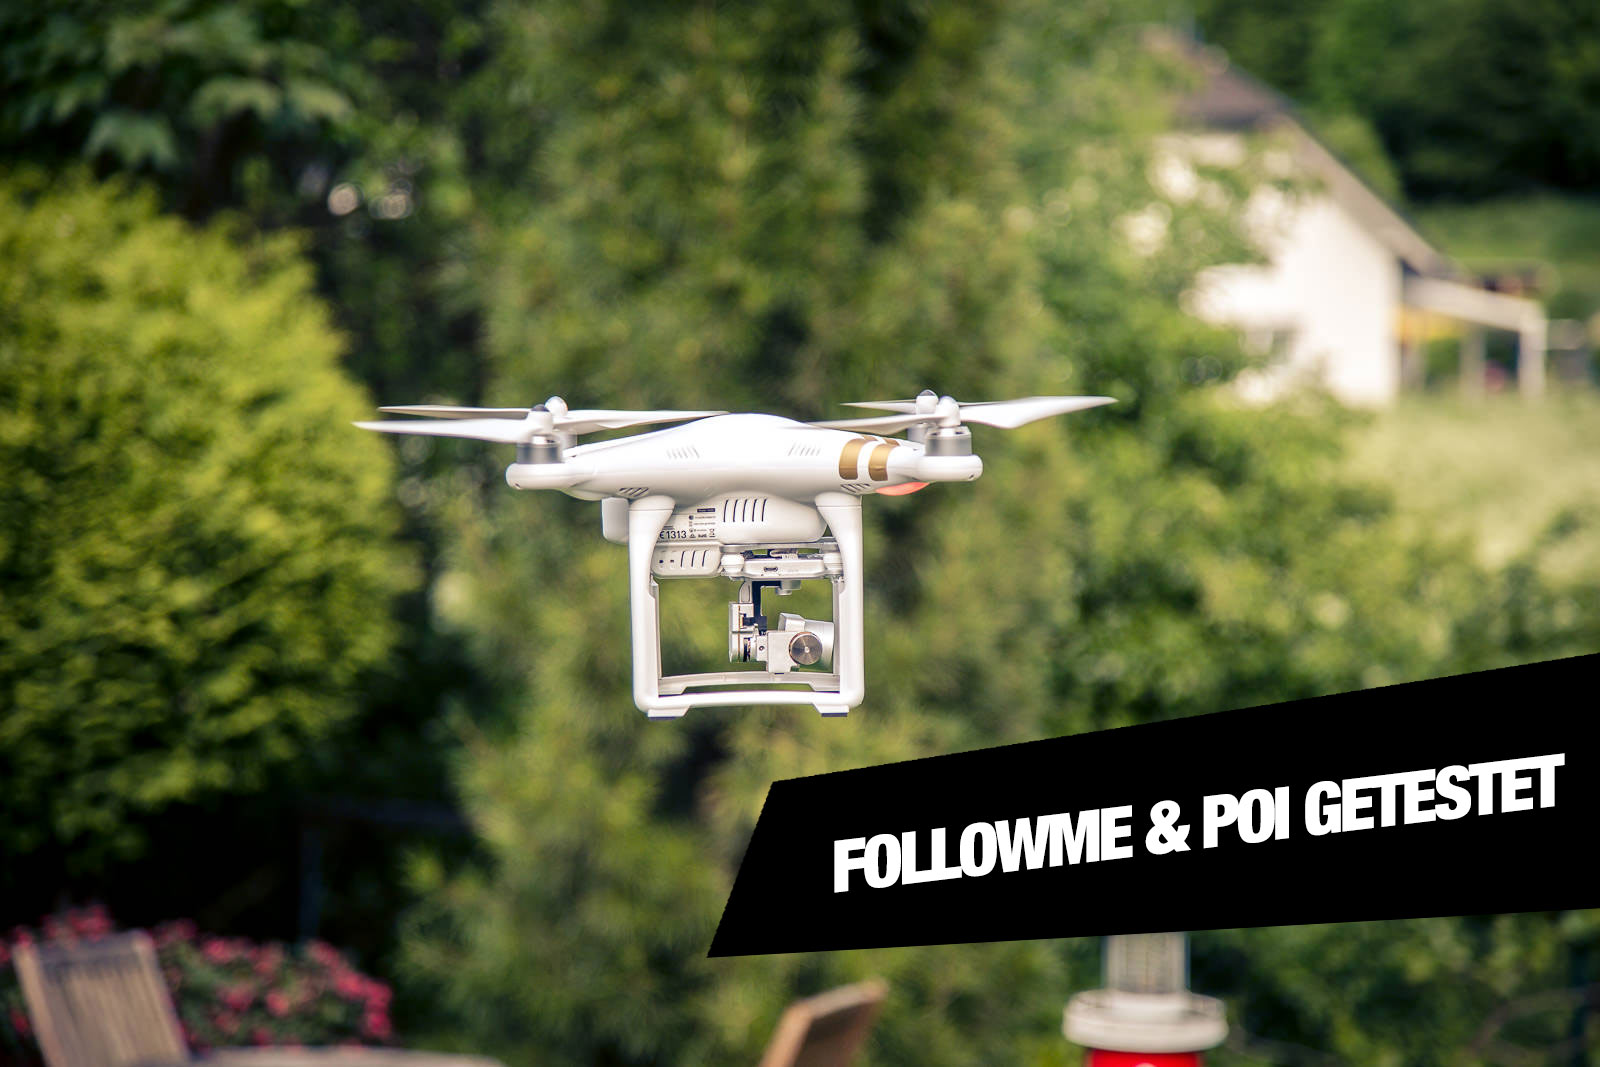 Phantom 3 Follow Me & POI getestet -